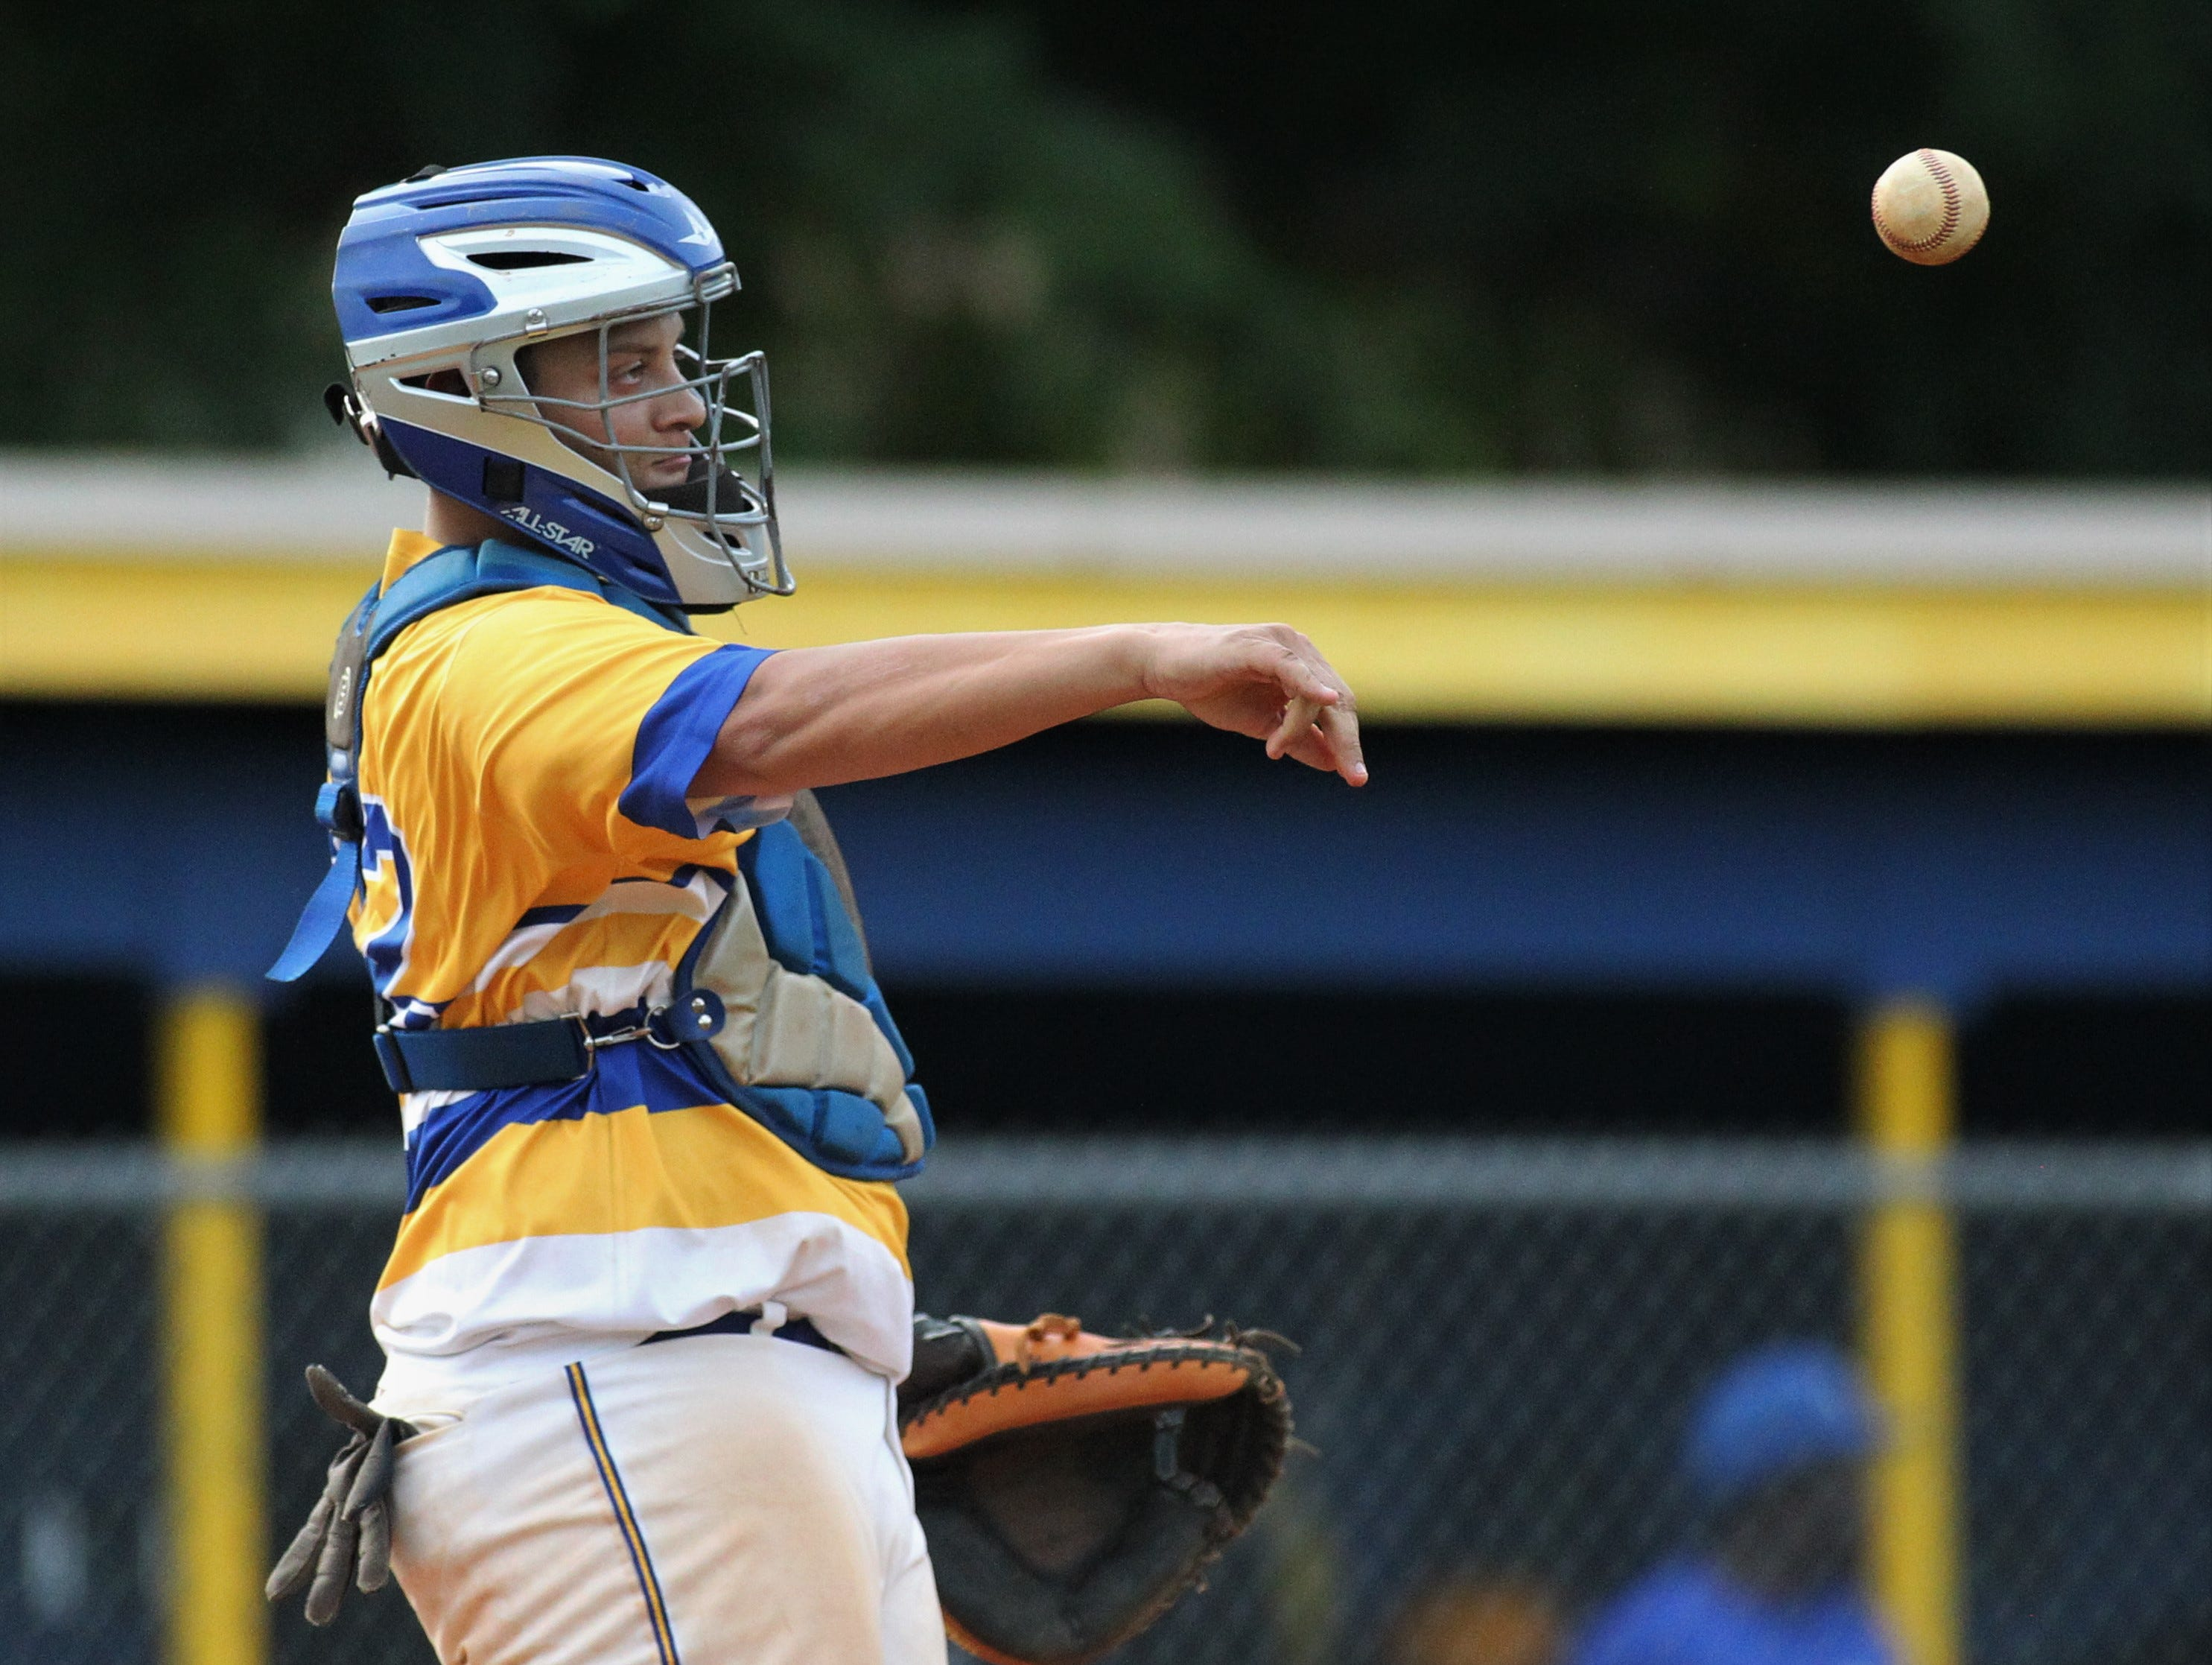 Rickards junior catcher Jayden Figueroa throws a ball back to the mound as Rickards beat Gadsden County 18-0 in three innings on Friday, April 12, 2019.